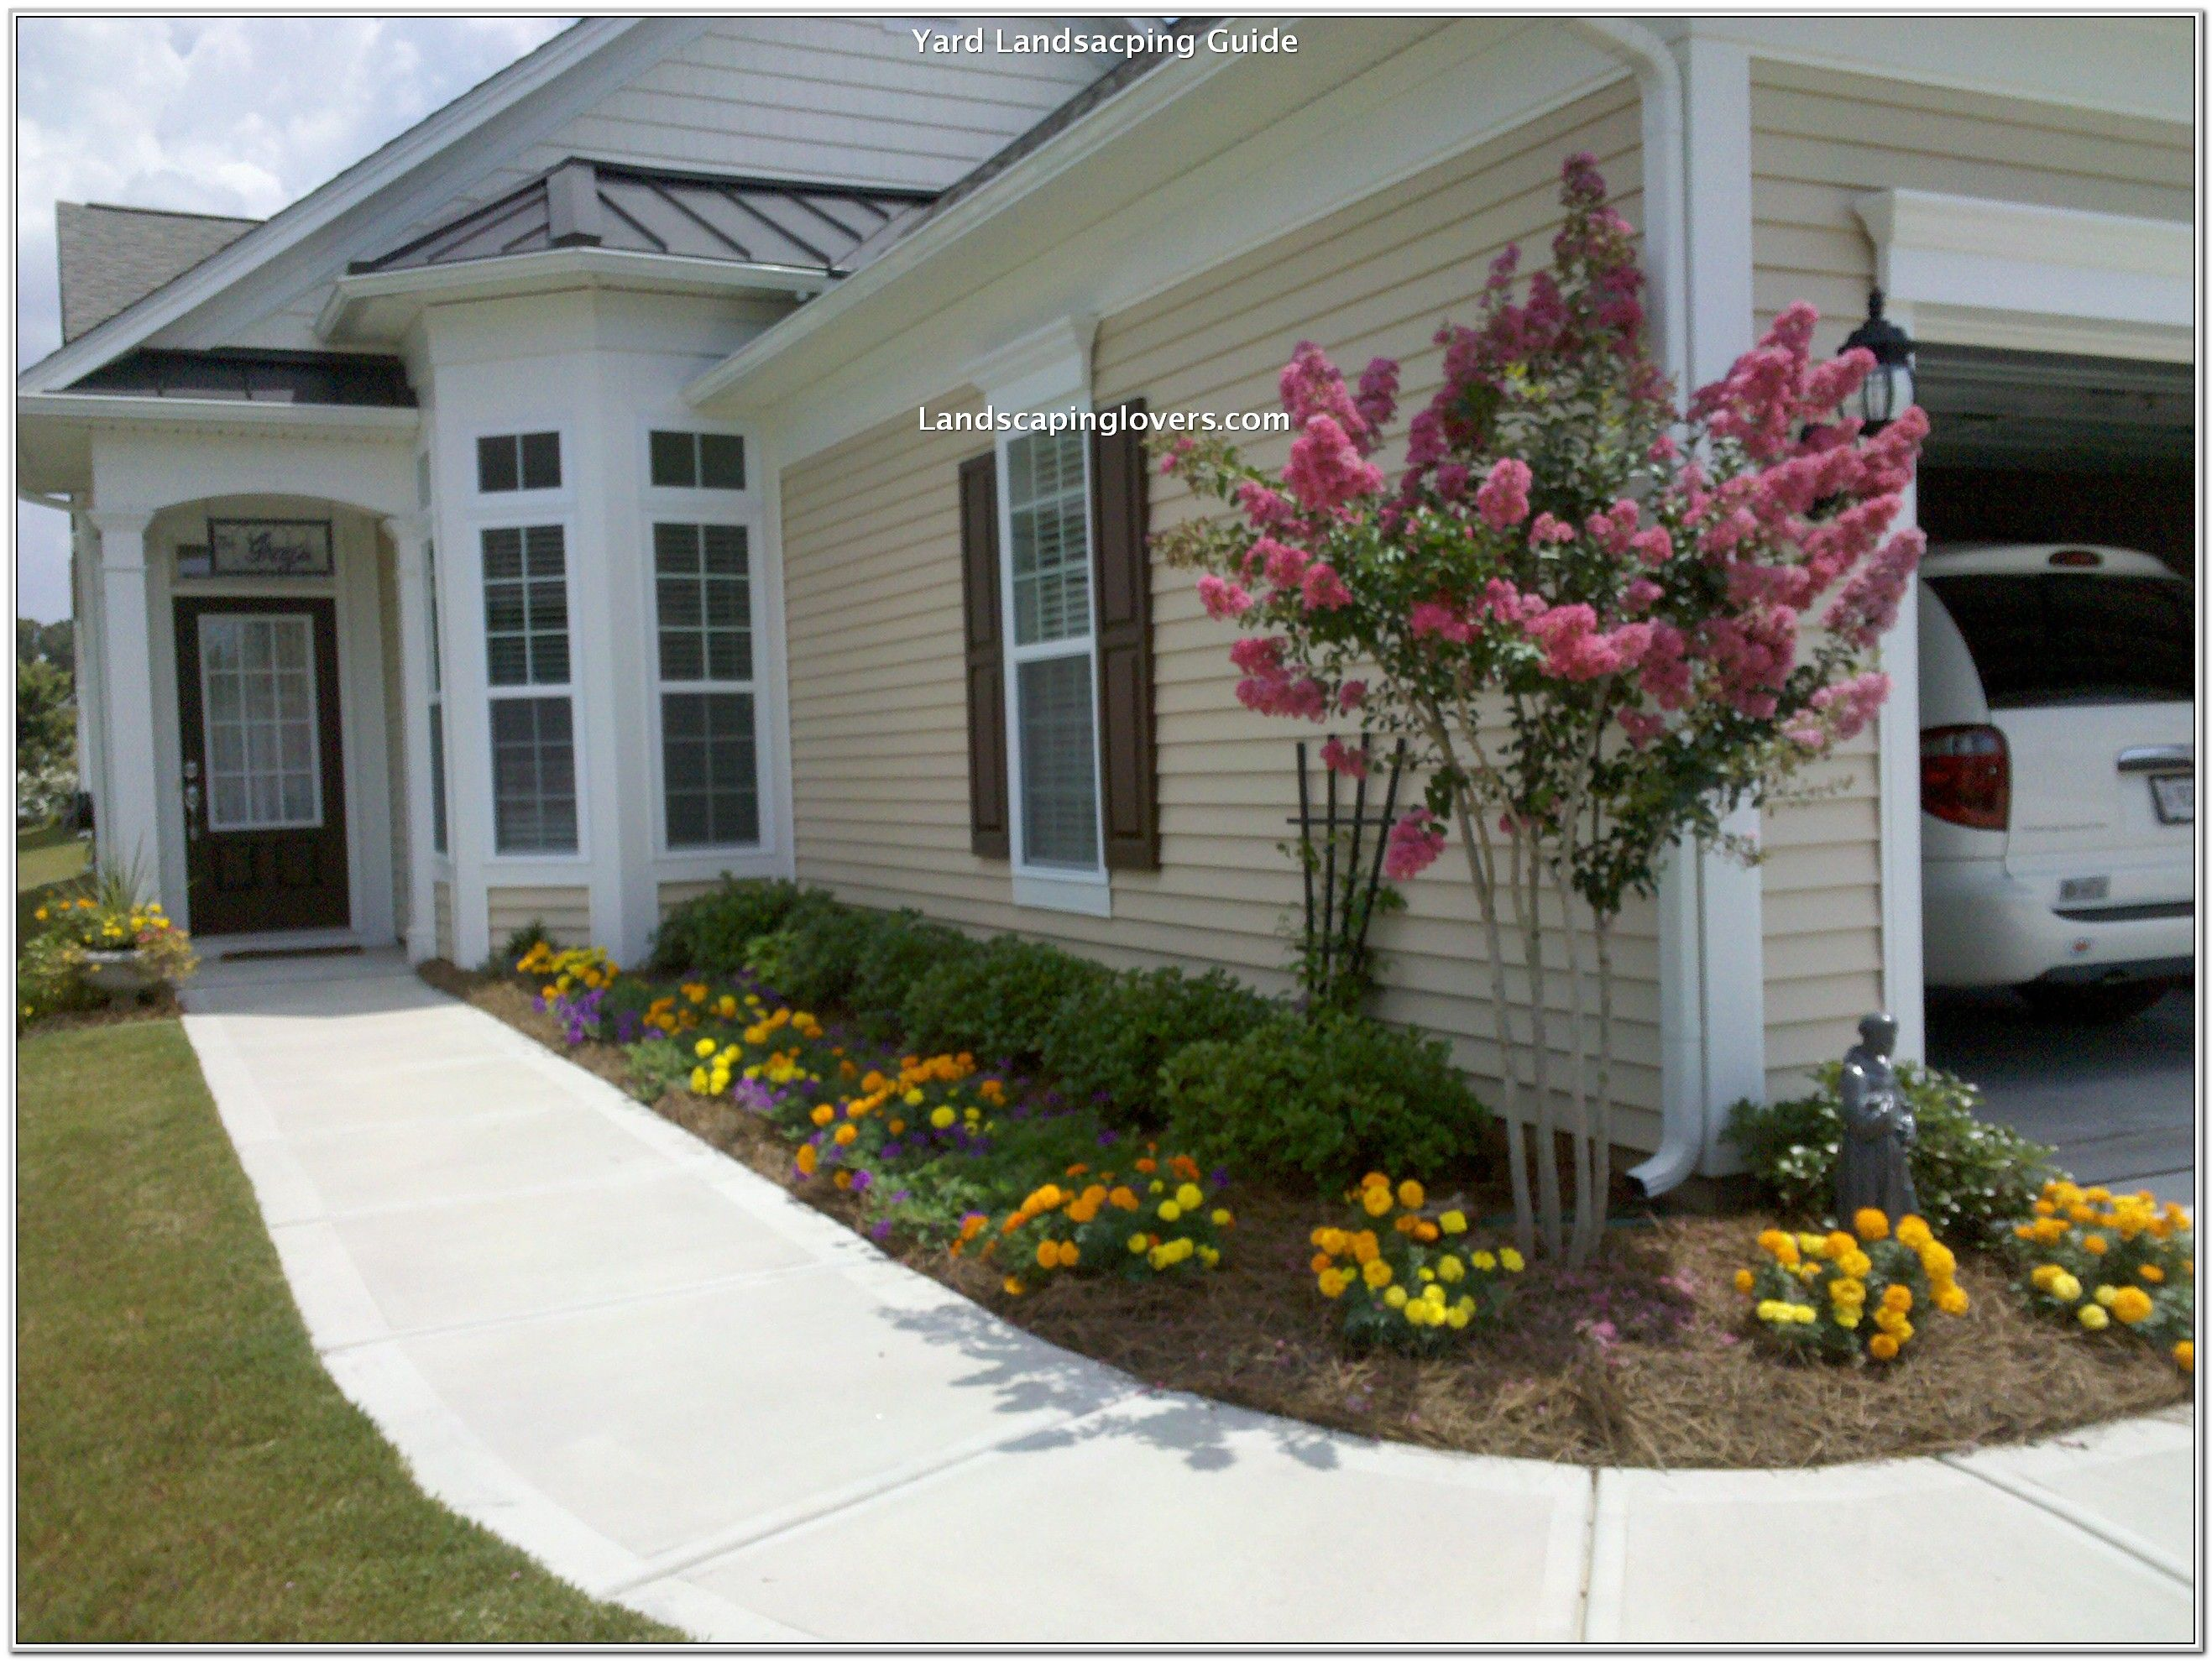 Easy Tweaks To Improve Your Landscaping Landscaping Lovers Front Yard Design Front Yard Landscaping Design Front Door Landscaping